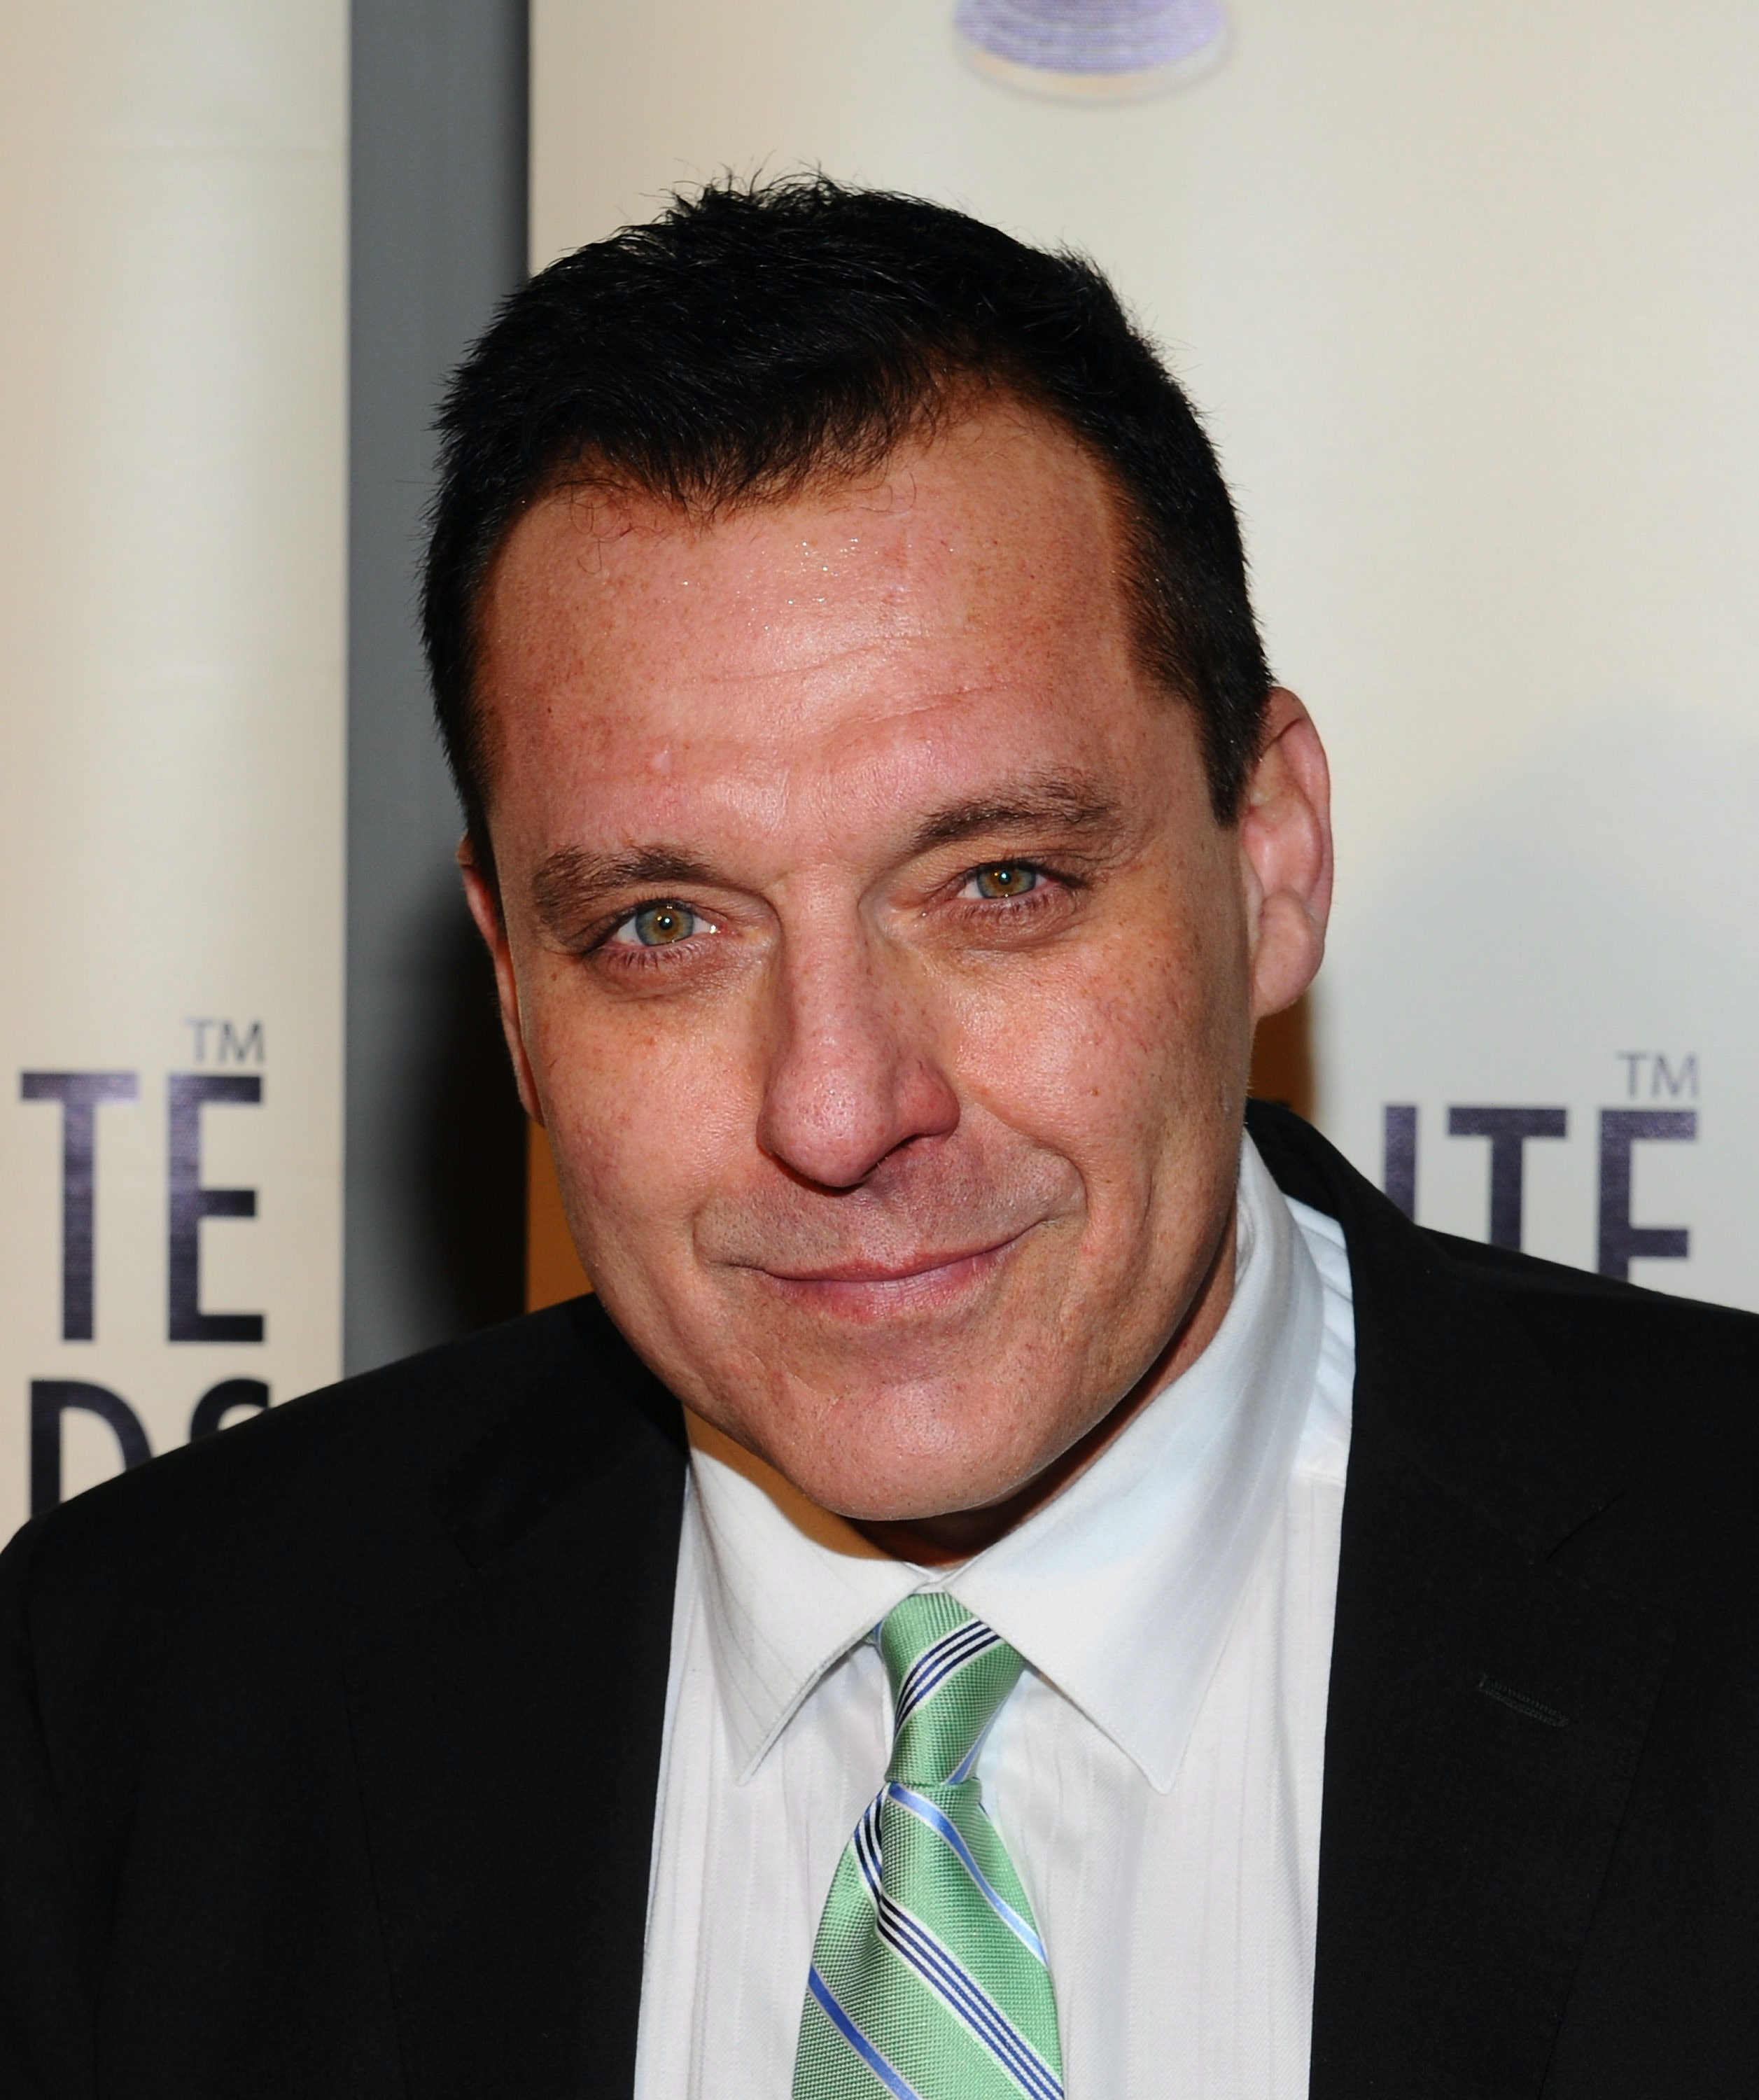 Report says Tom Sizemore violated 11-year-old girl on movie set